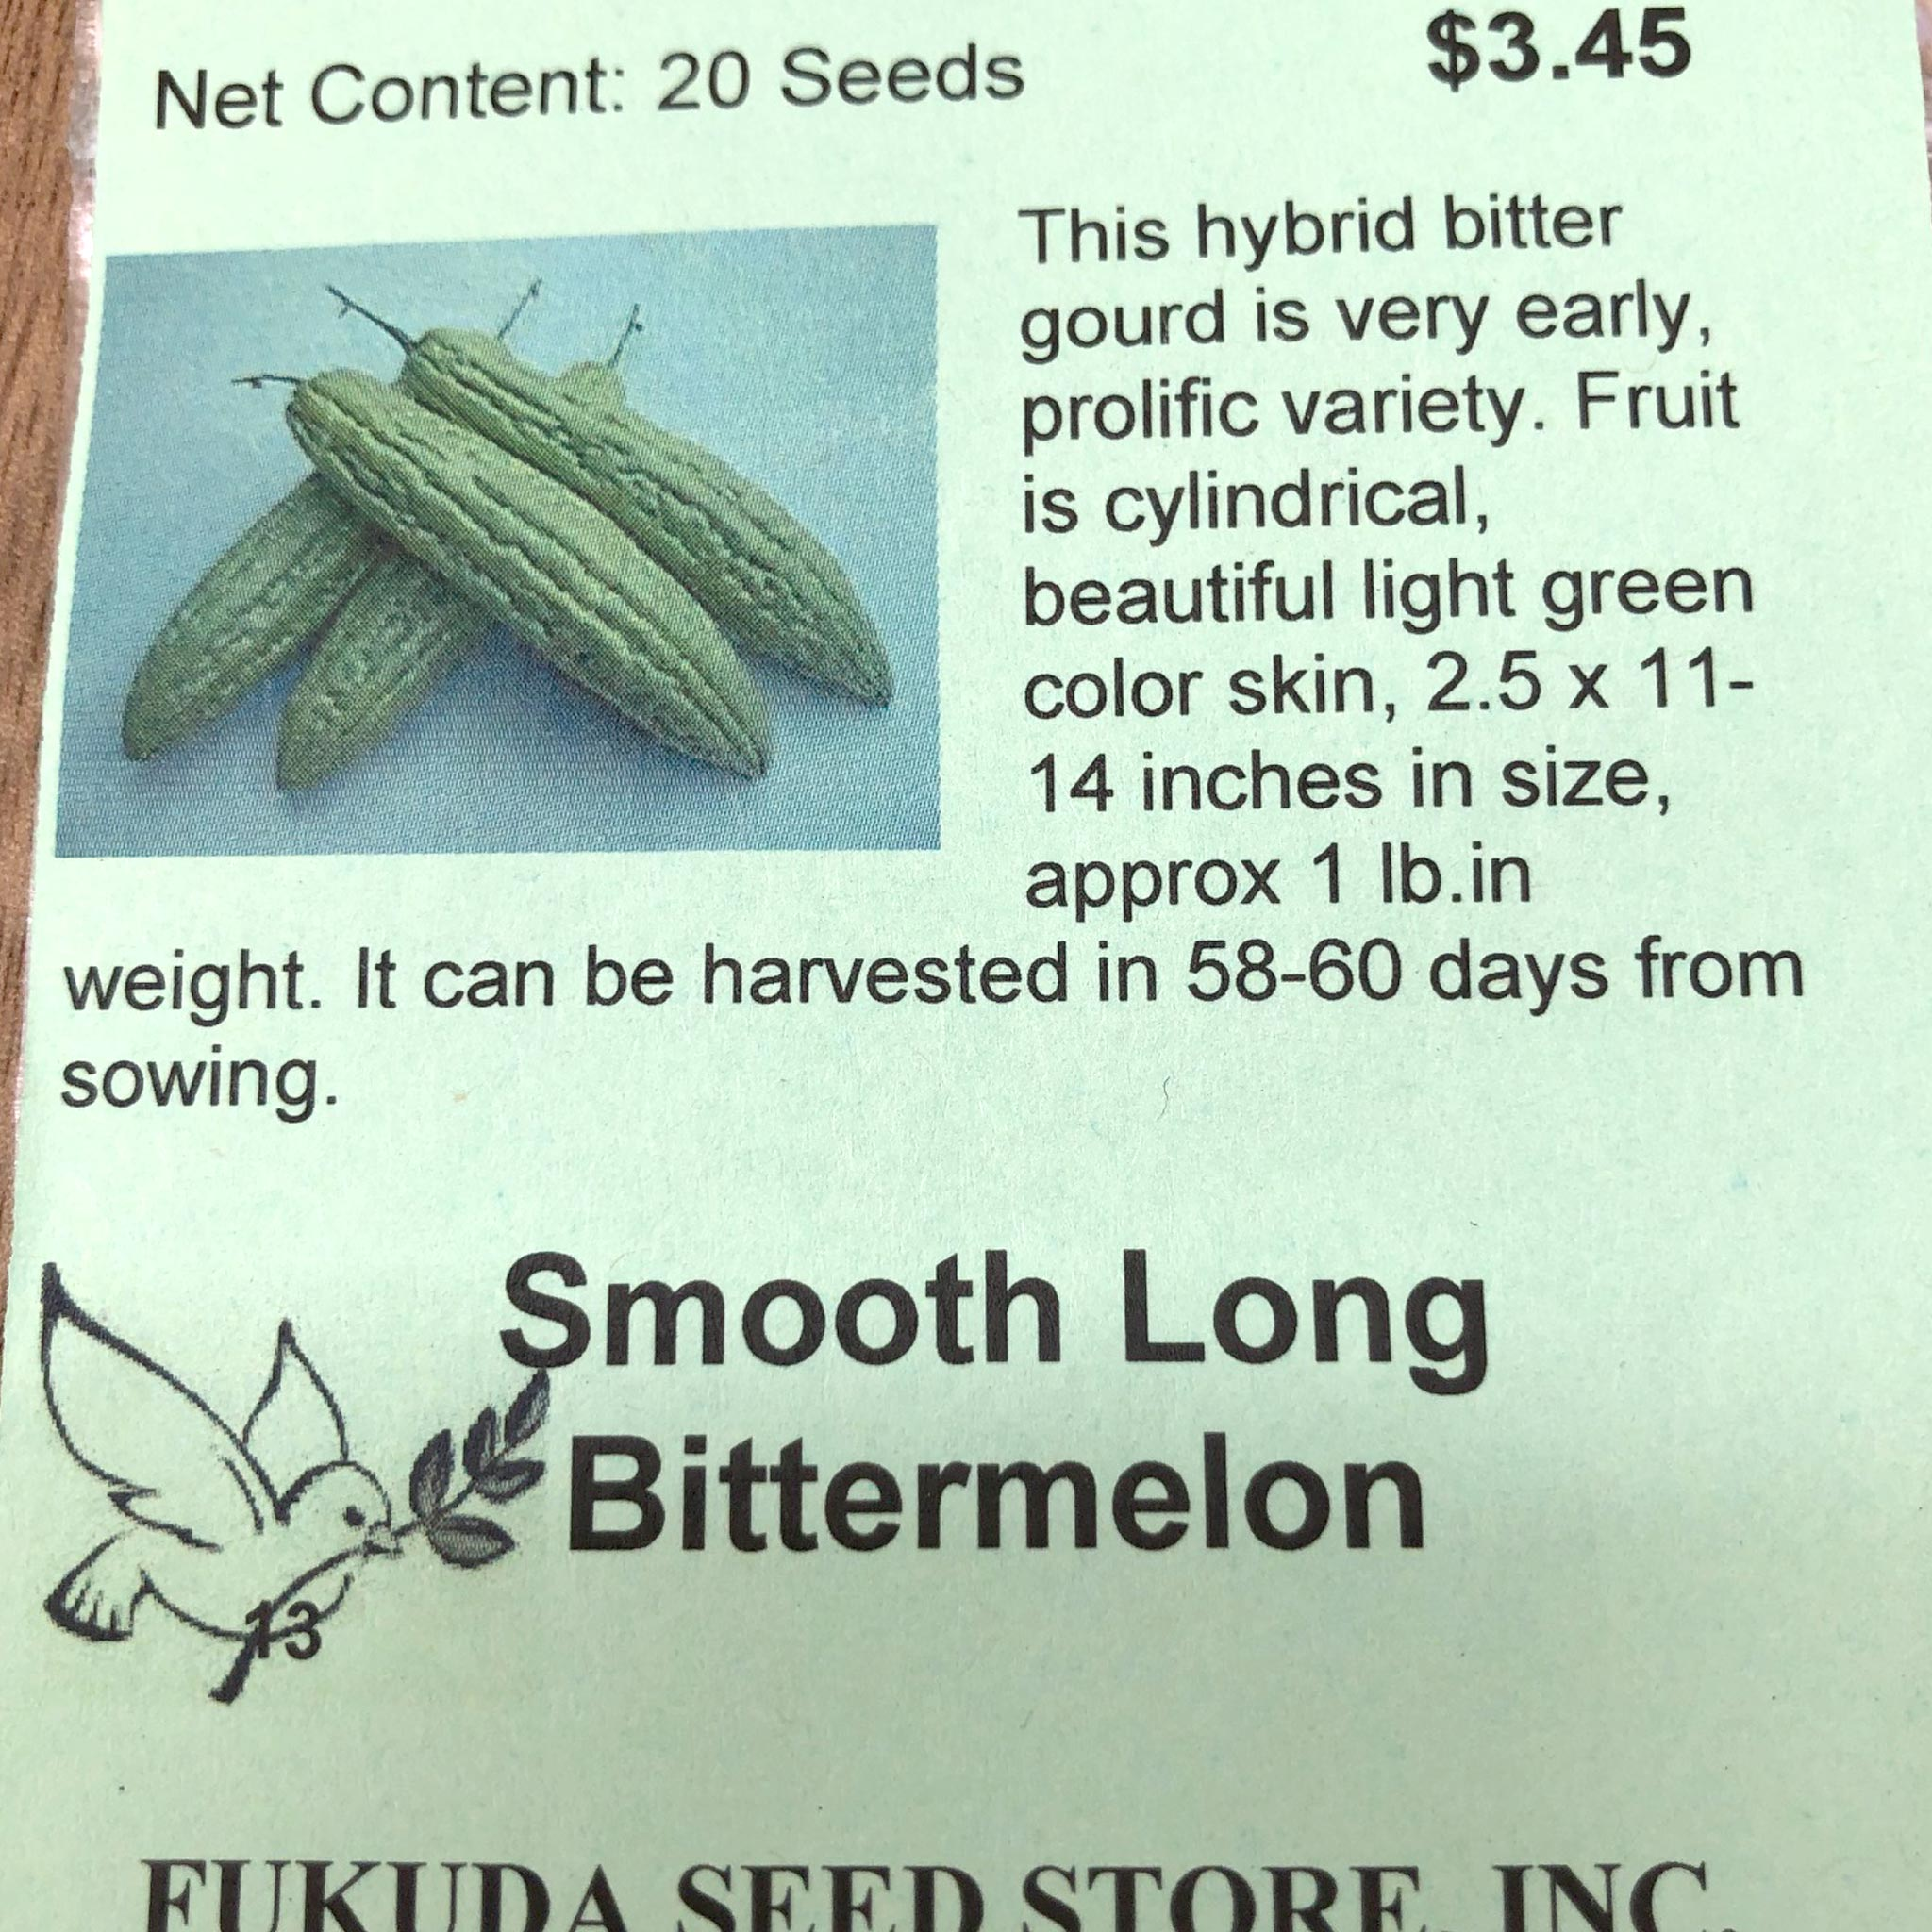 Bittermelon, Smooth Long